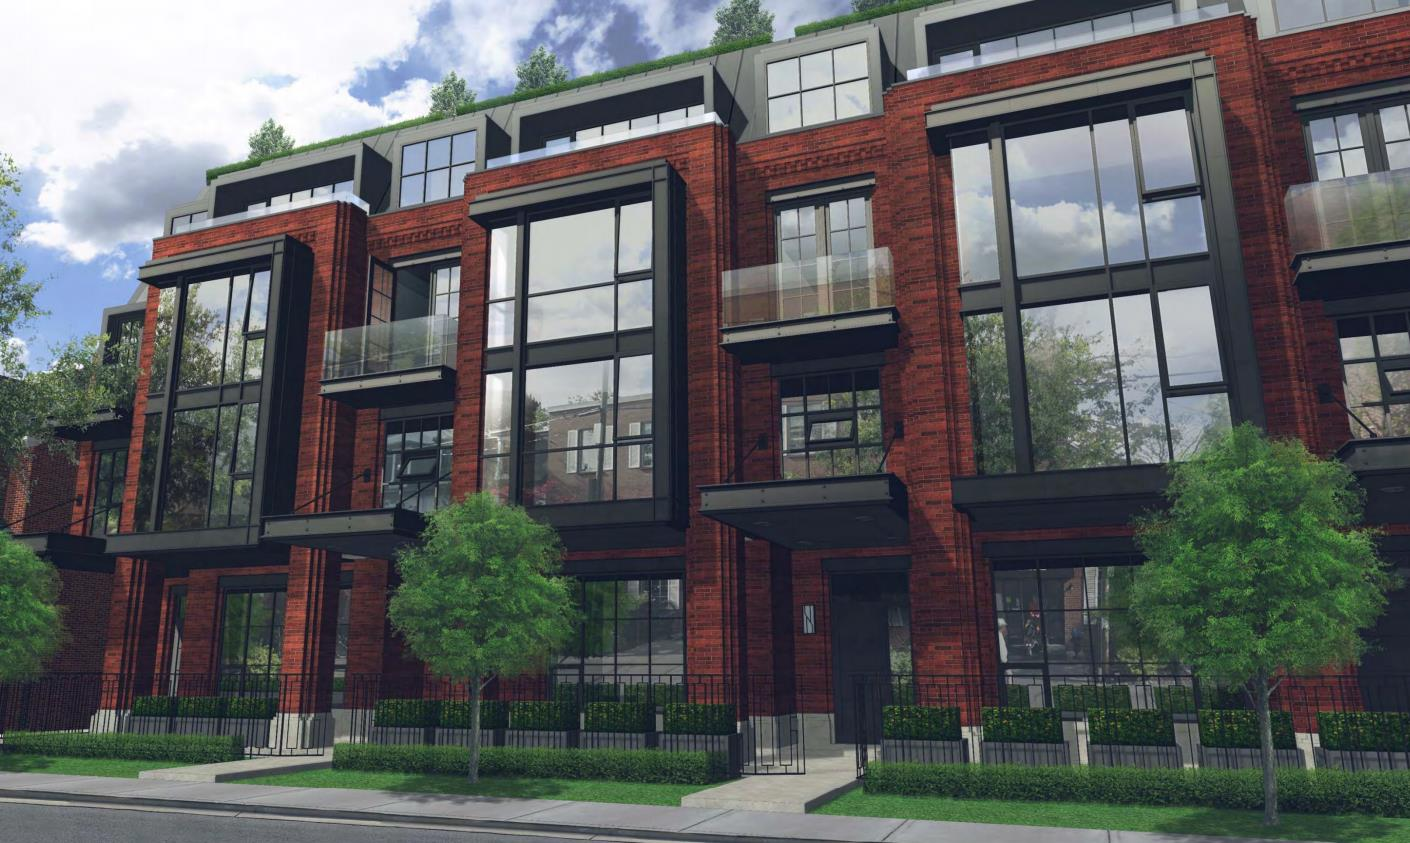 36 Birch Ave Townhouses summerhill toronto prices listings floor plans